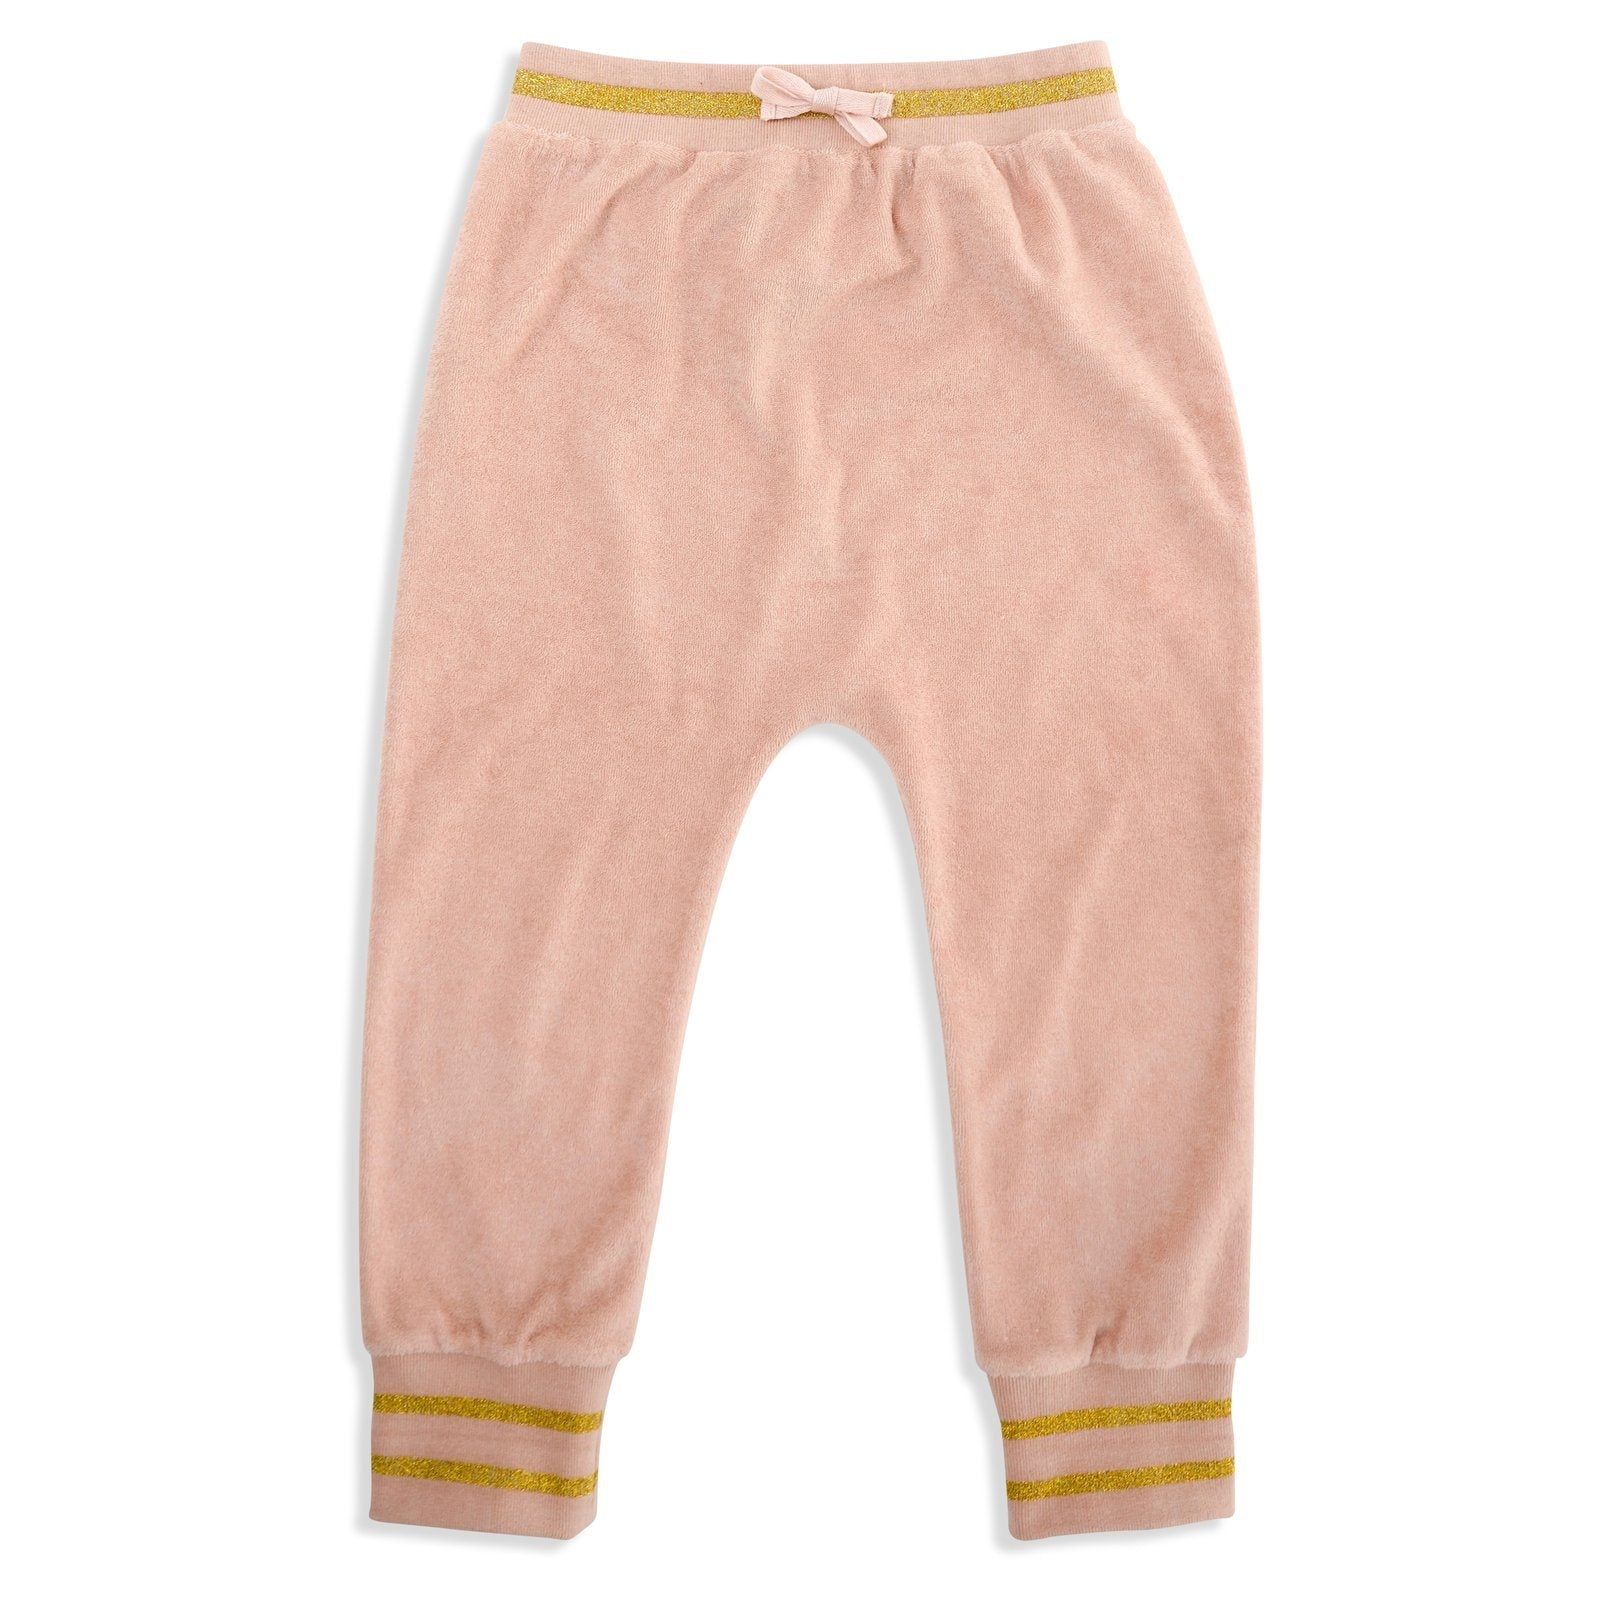 Miami Terry Towelling Pants (Rose Dust/Gold)